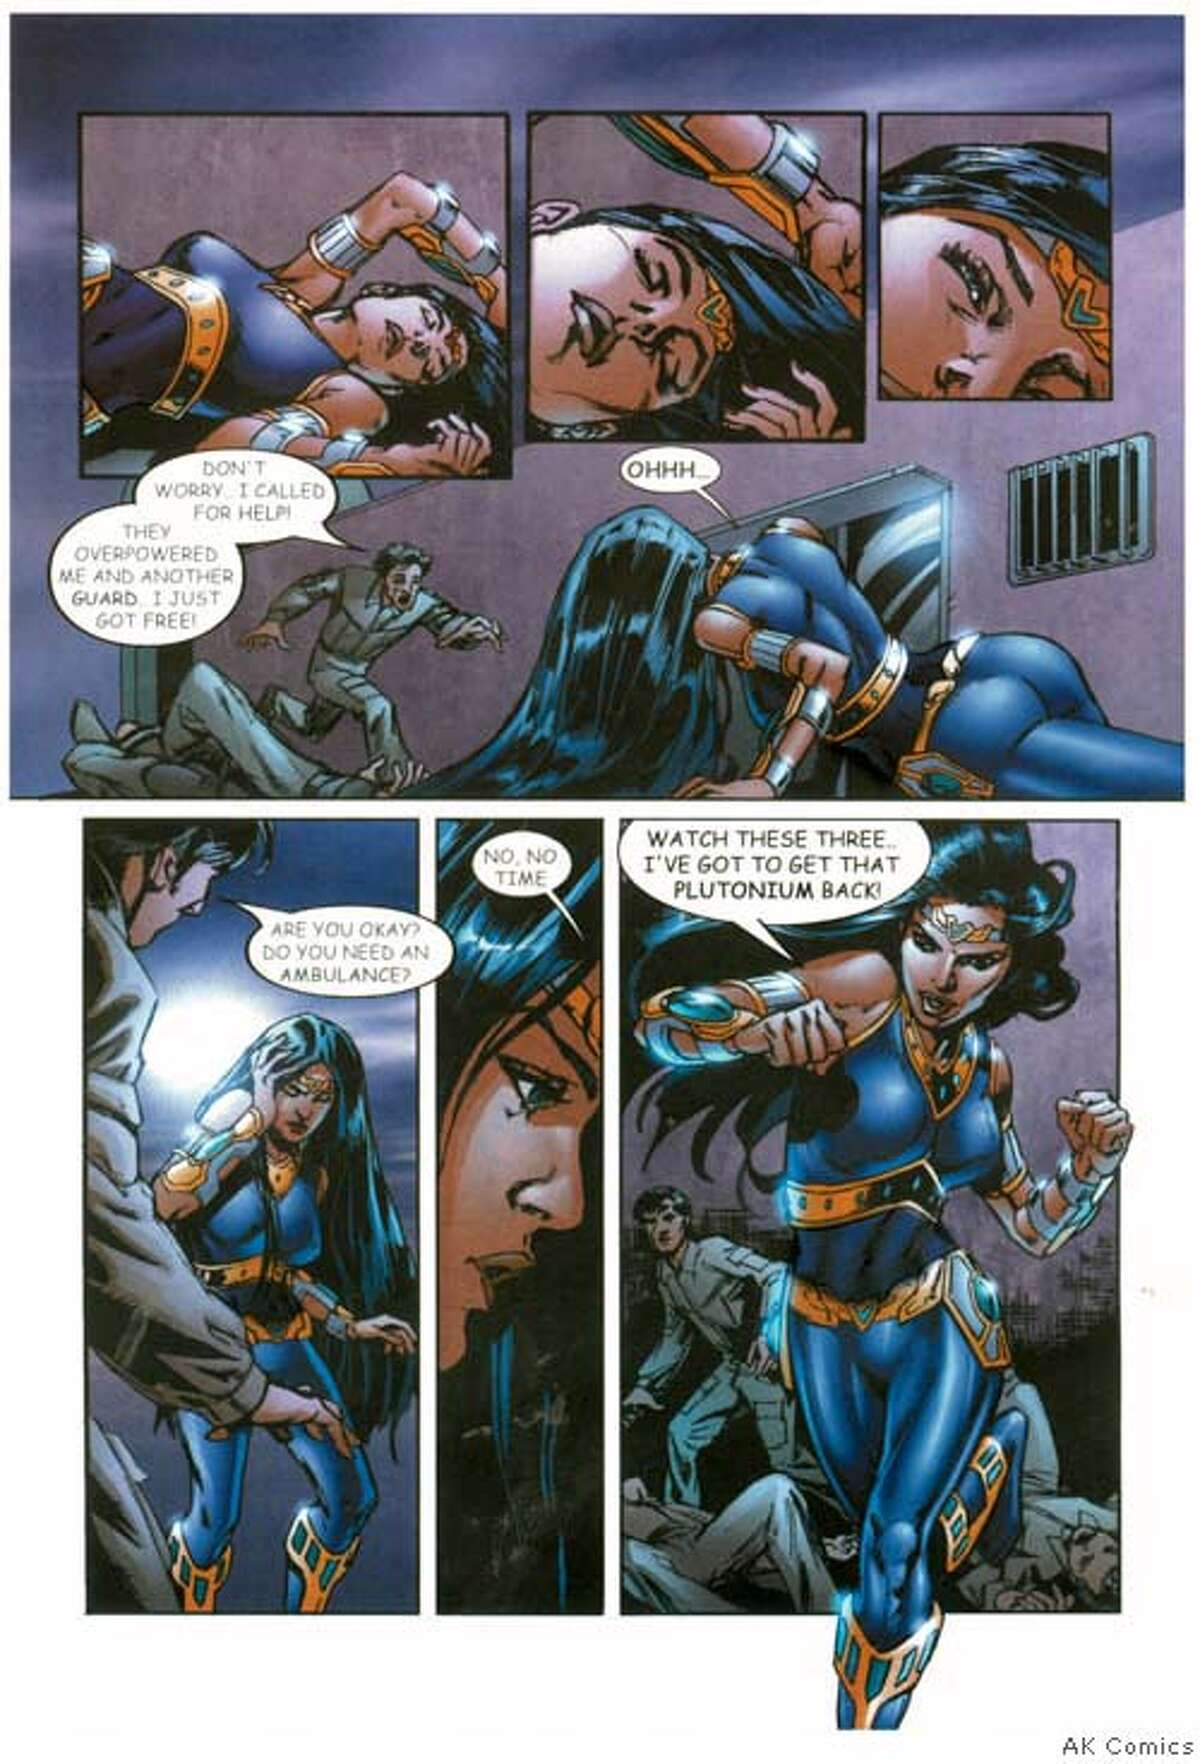 Jalila tries to track down plutonium thieves in a new line of comics featuring Arab superheroes. Courtesy of AK Comics Datebook#Datebook#Chronicle#10/14/2004#ALL#5star##0422354509